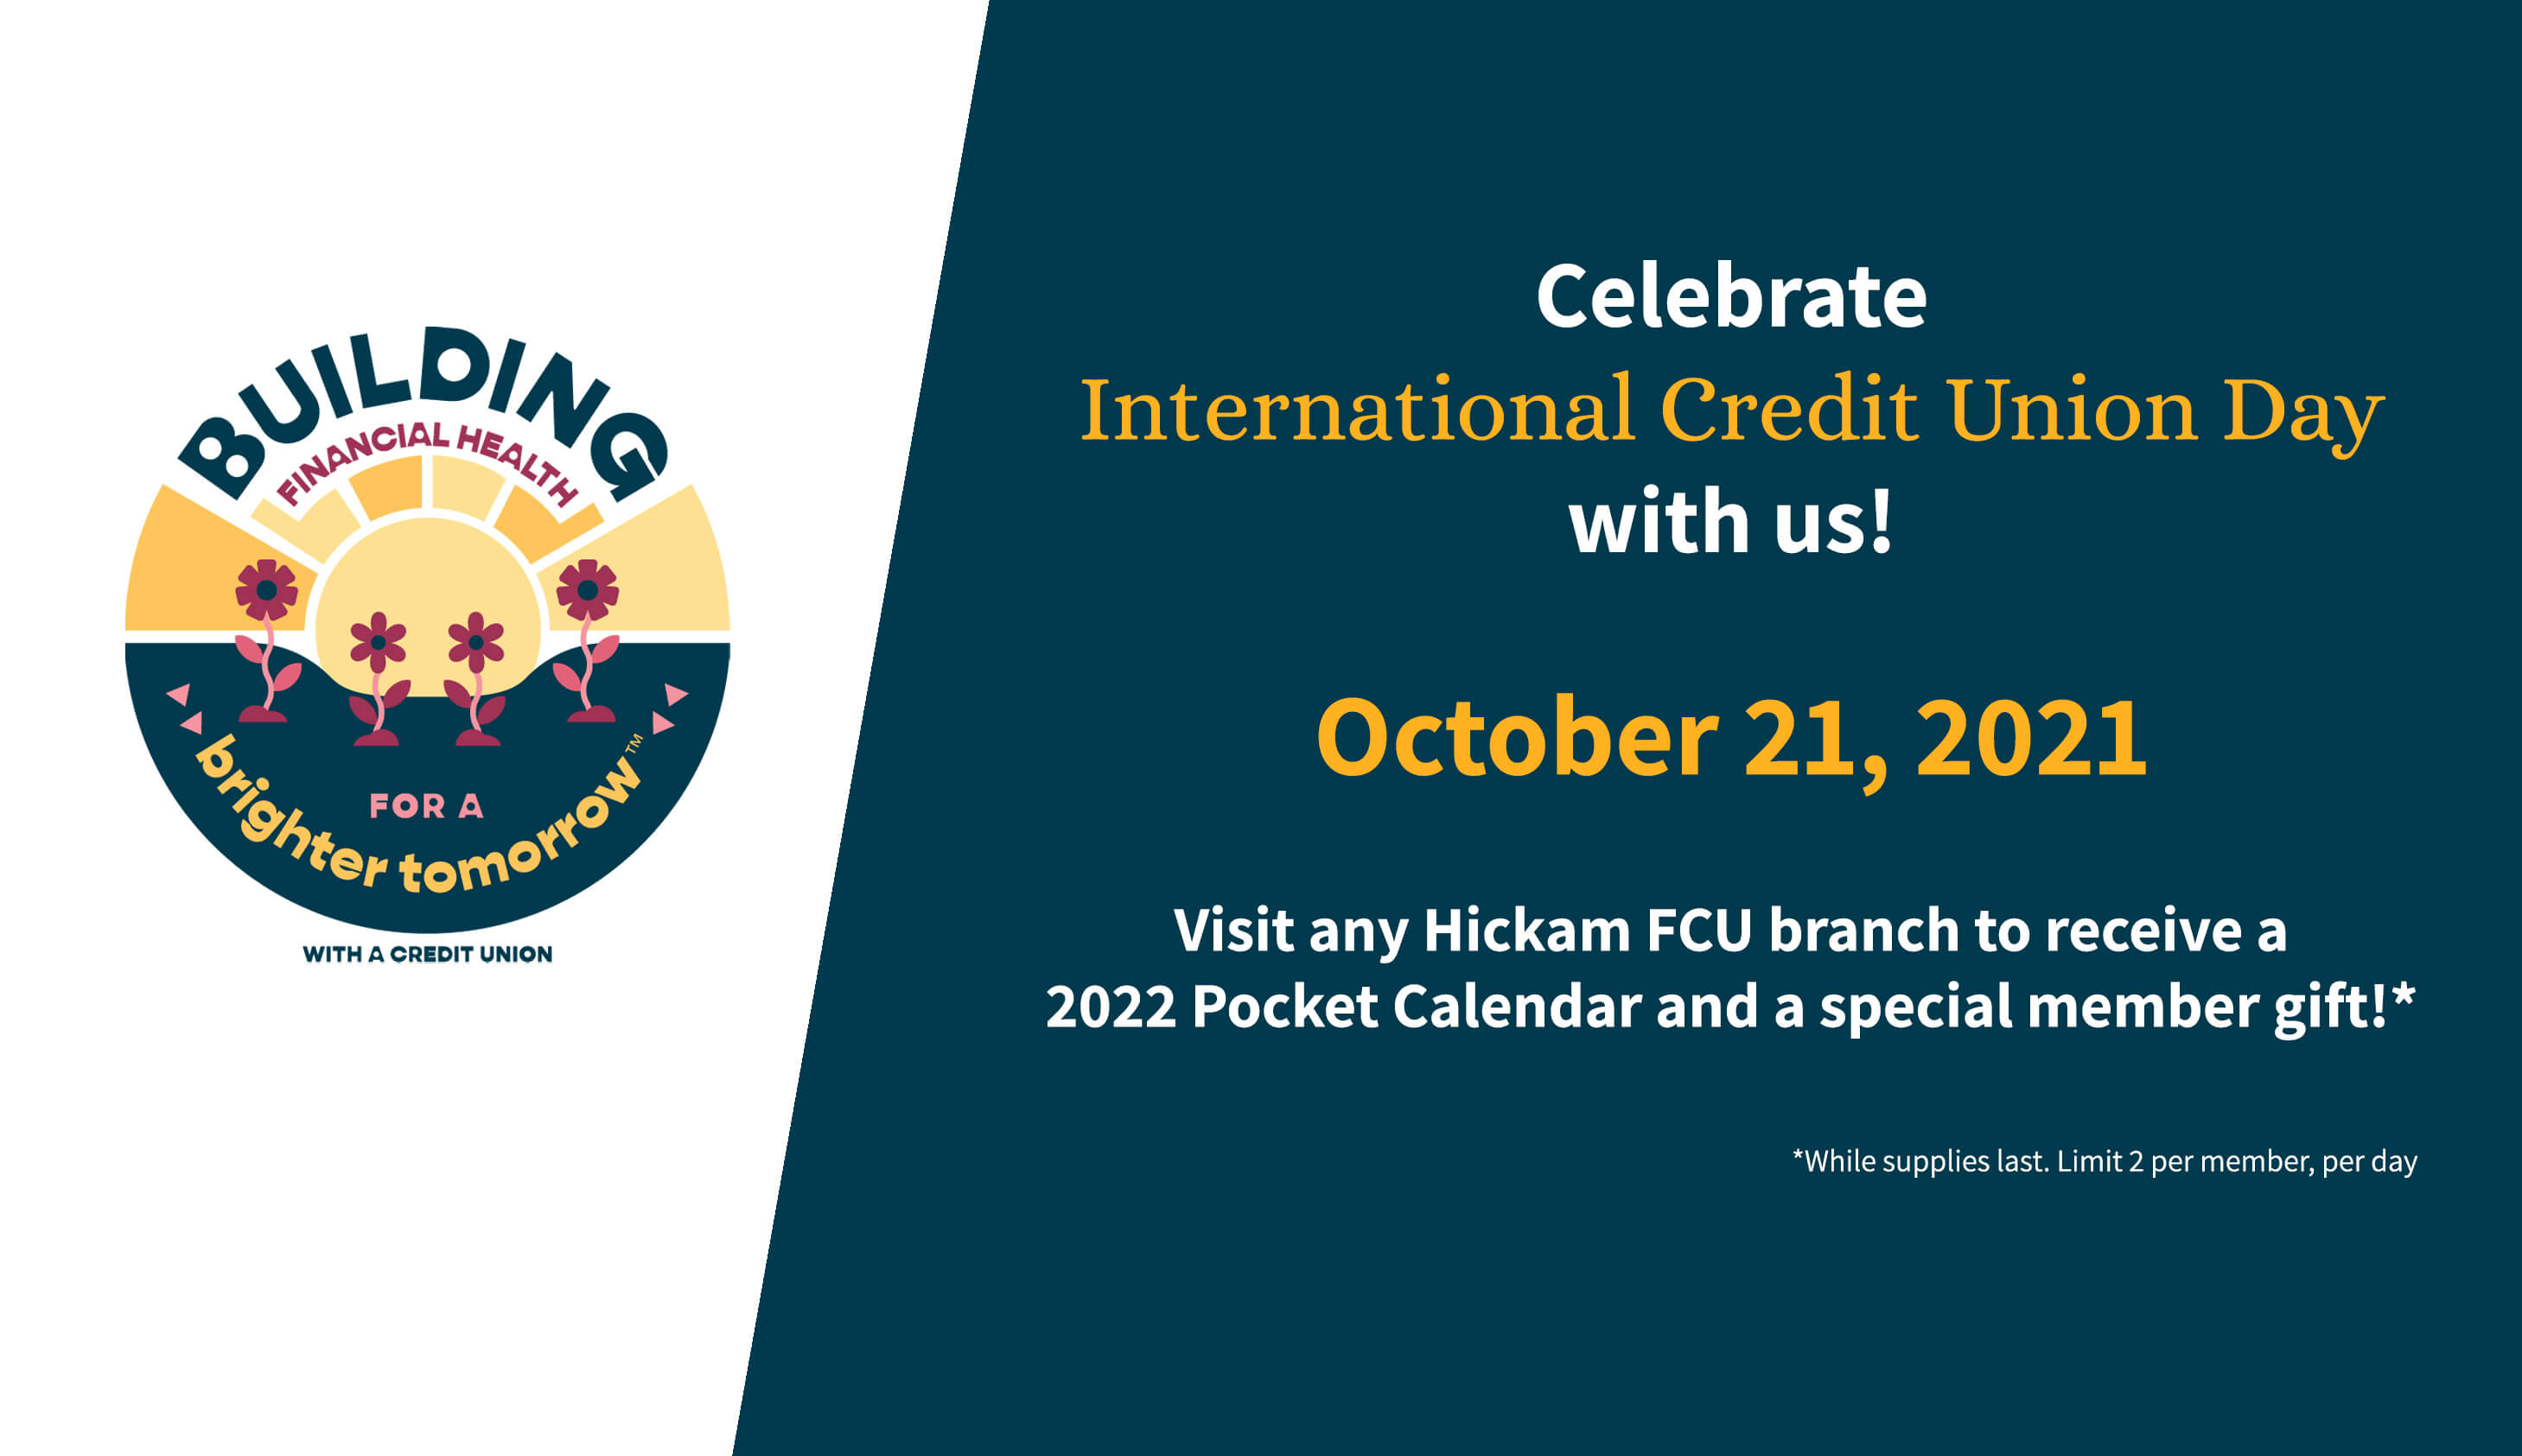 Celebrate International Credit Union Day with us! October 21, 2021. Visit any Hickam FCU branch to receive a 2022 Pocket Calendar and a special member gift! While supplies last. Limit 2 per member, per day.